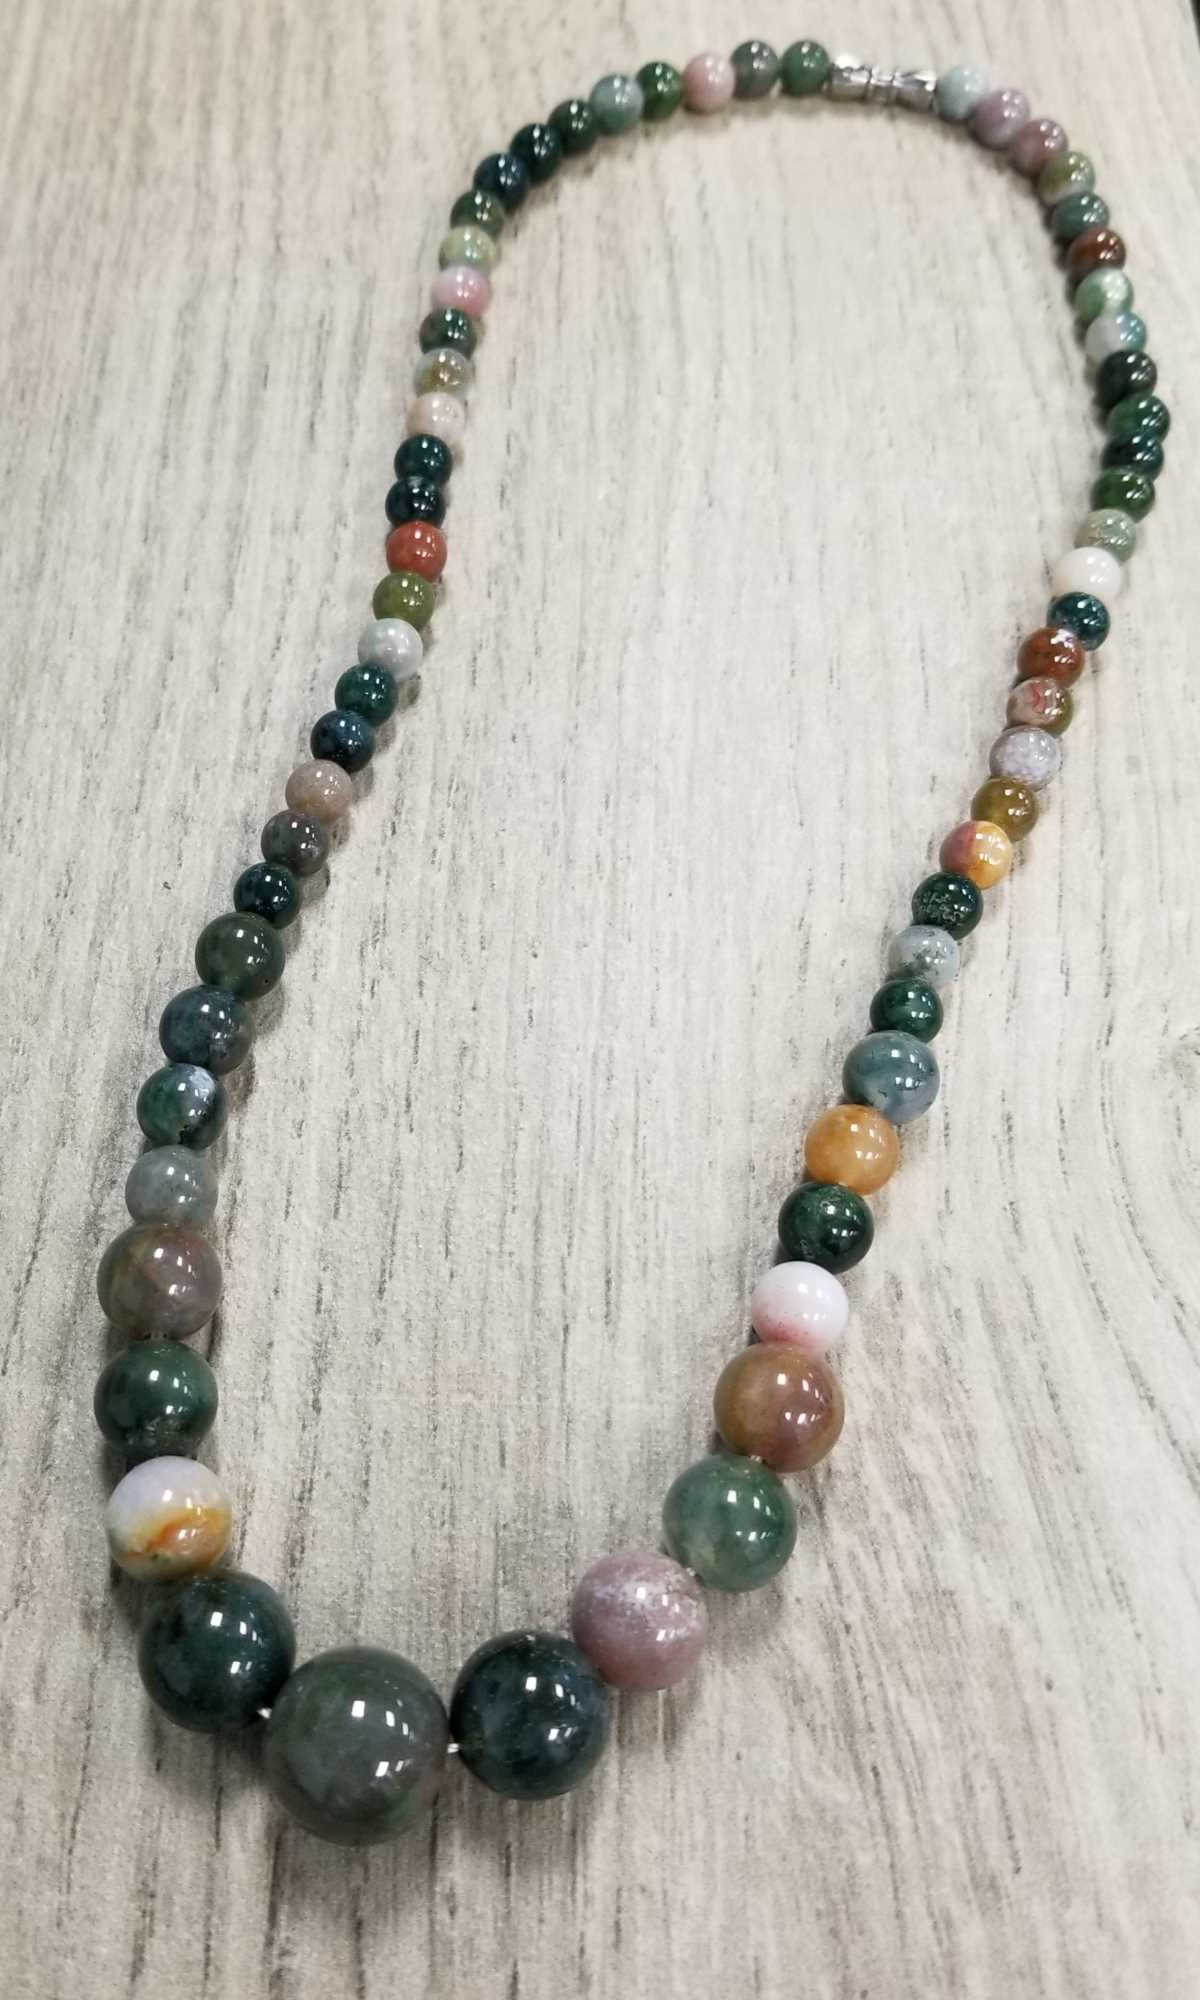 Agate Necklace for Engagement Gift